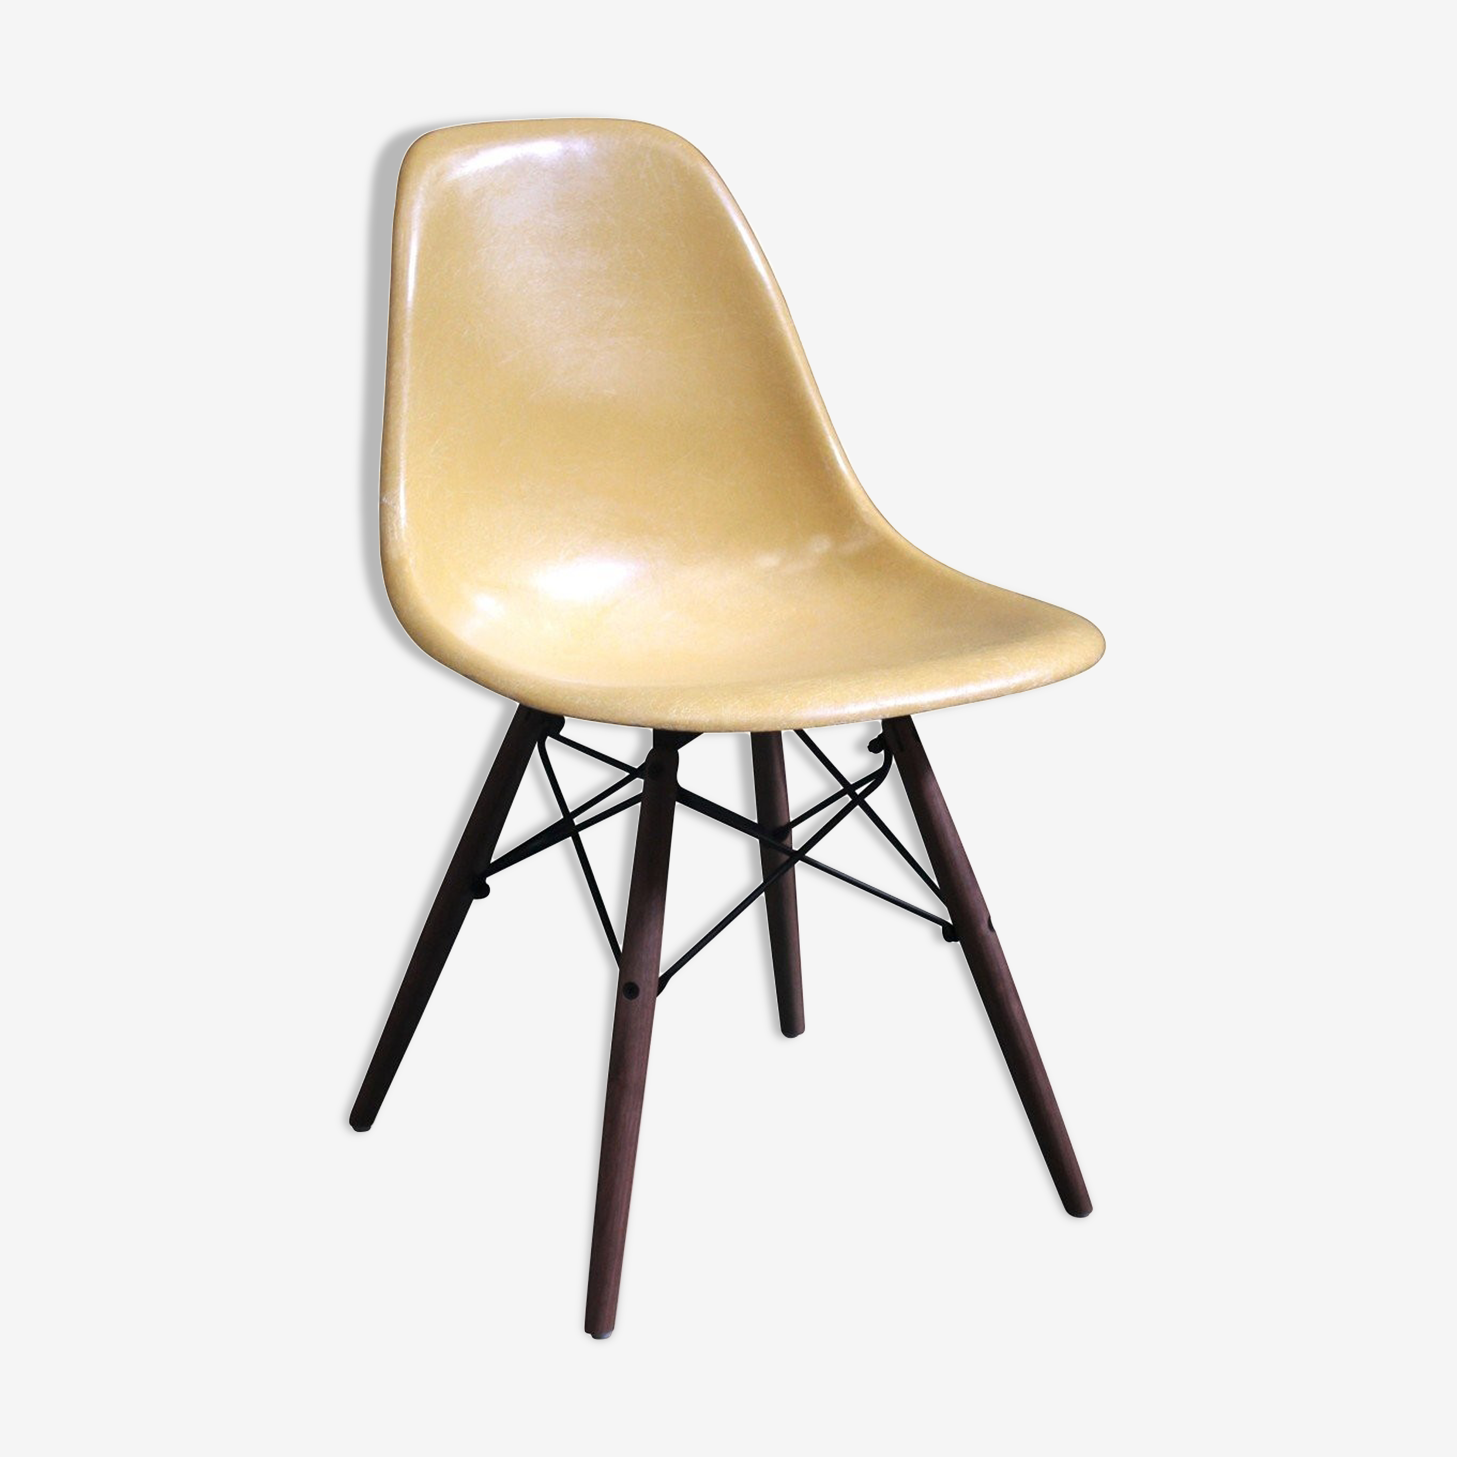 "Chair Eames DSW ""Ochre Light"" Herman Miller 1970 edition"